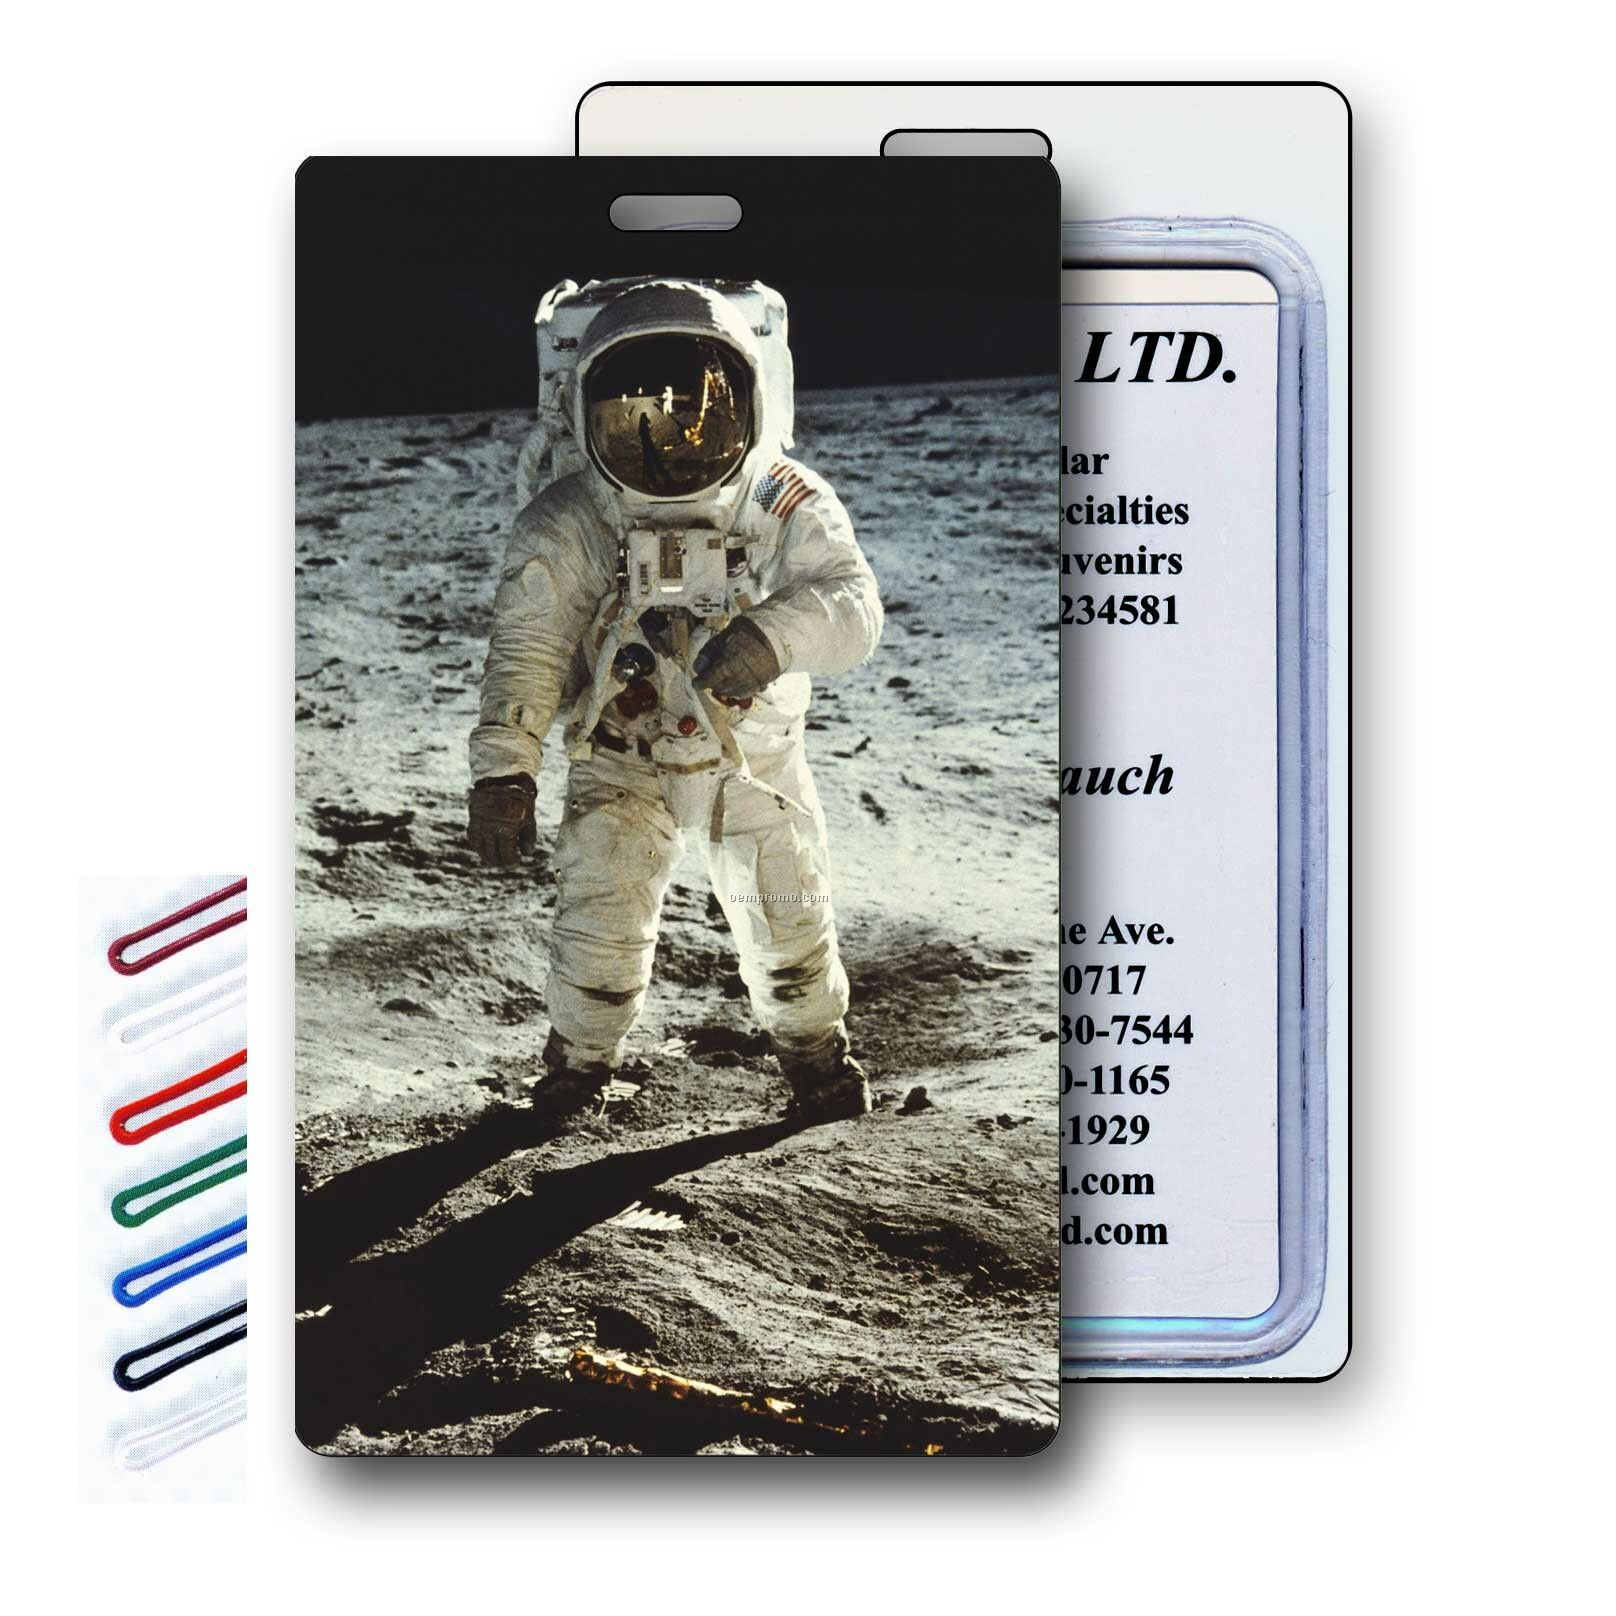 Official Astronaut ID Card (page 2) - Pics about space